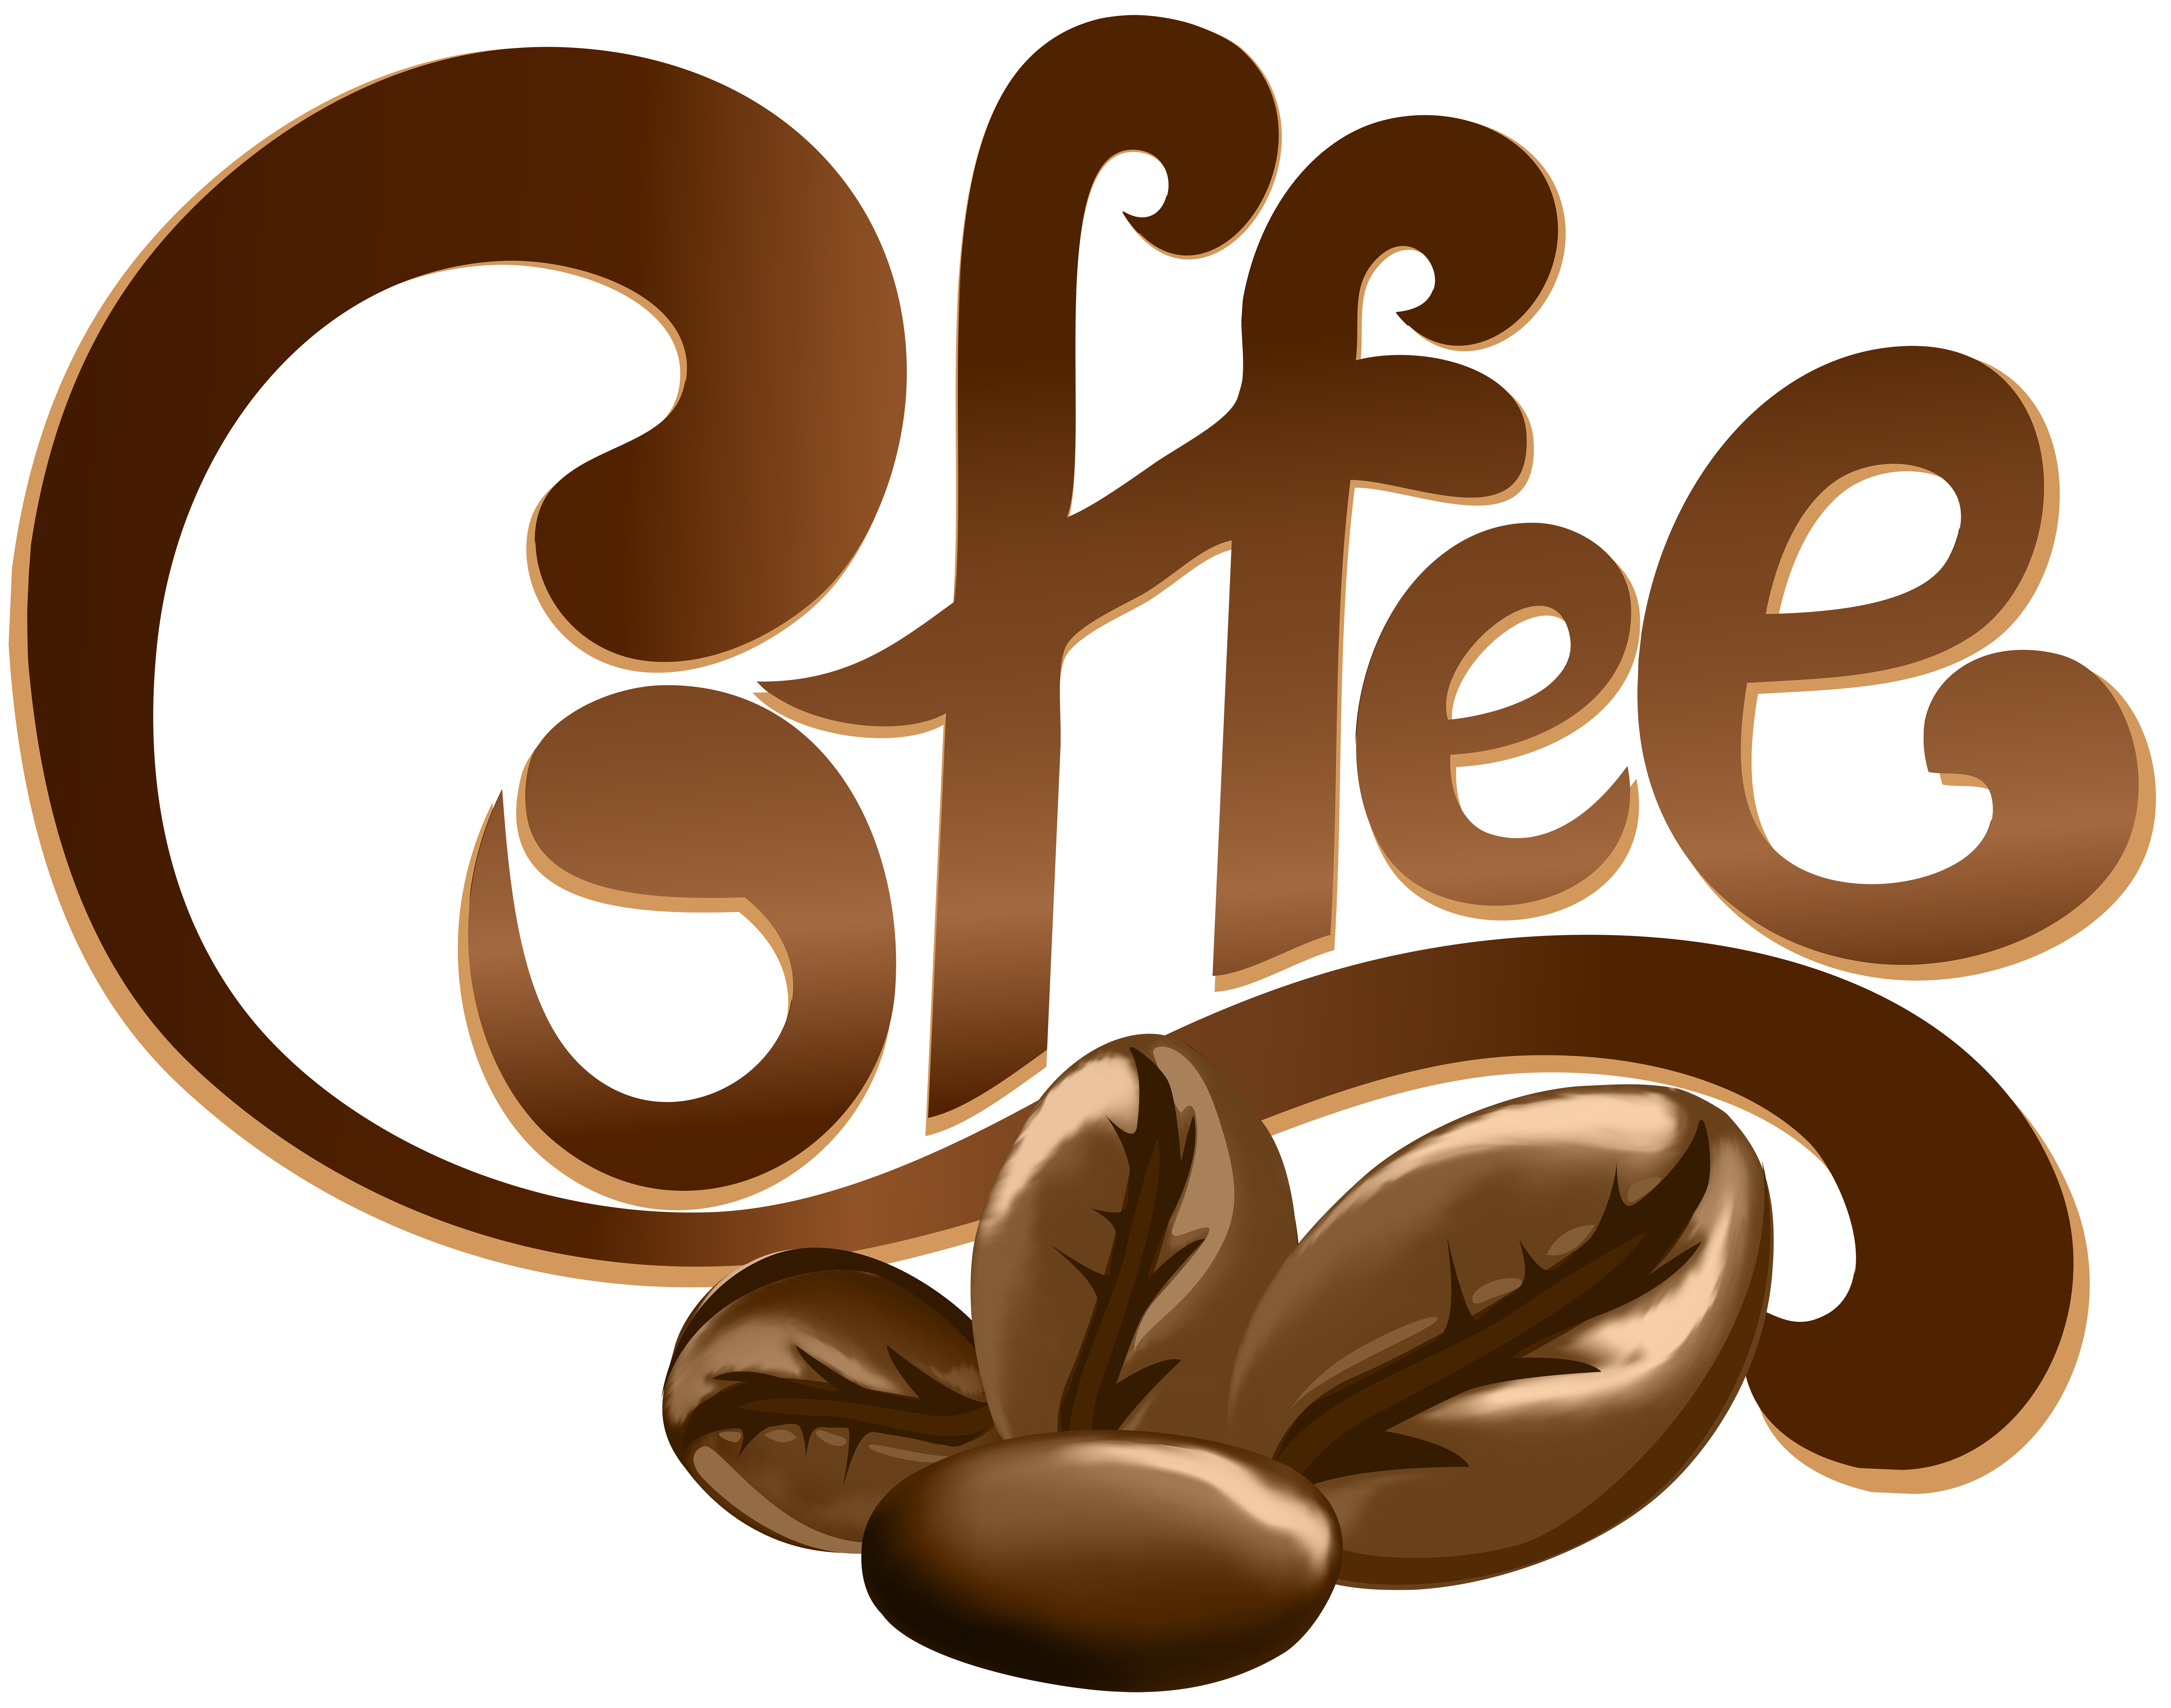 Coffee png images. Clip art image gallery